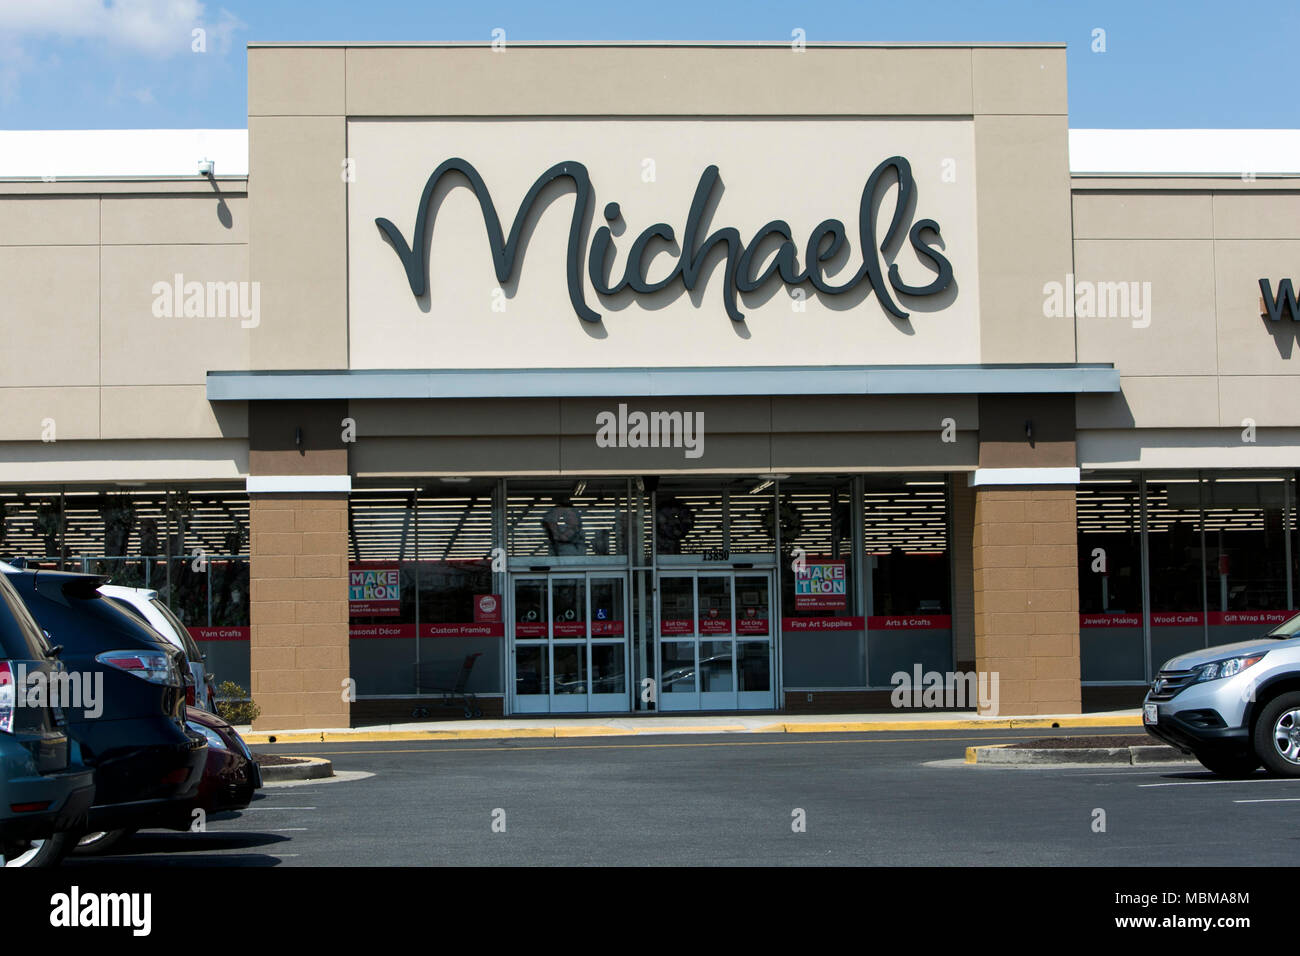 Michaels Arts And Crafts Store Imágenes De Stock & Michaels Arts And ...